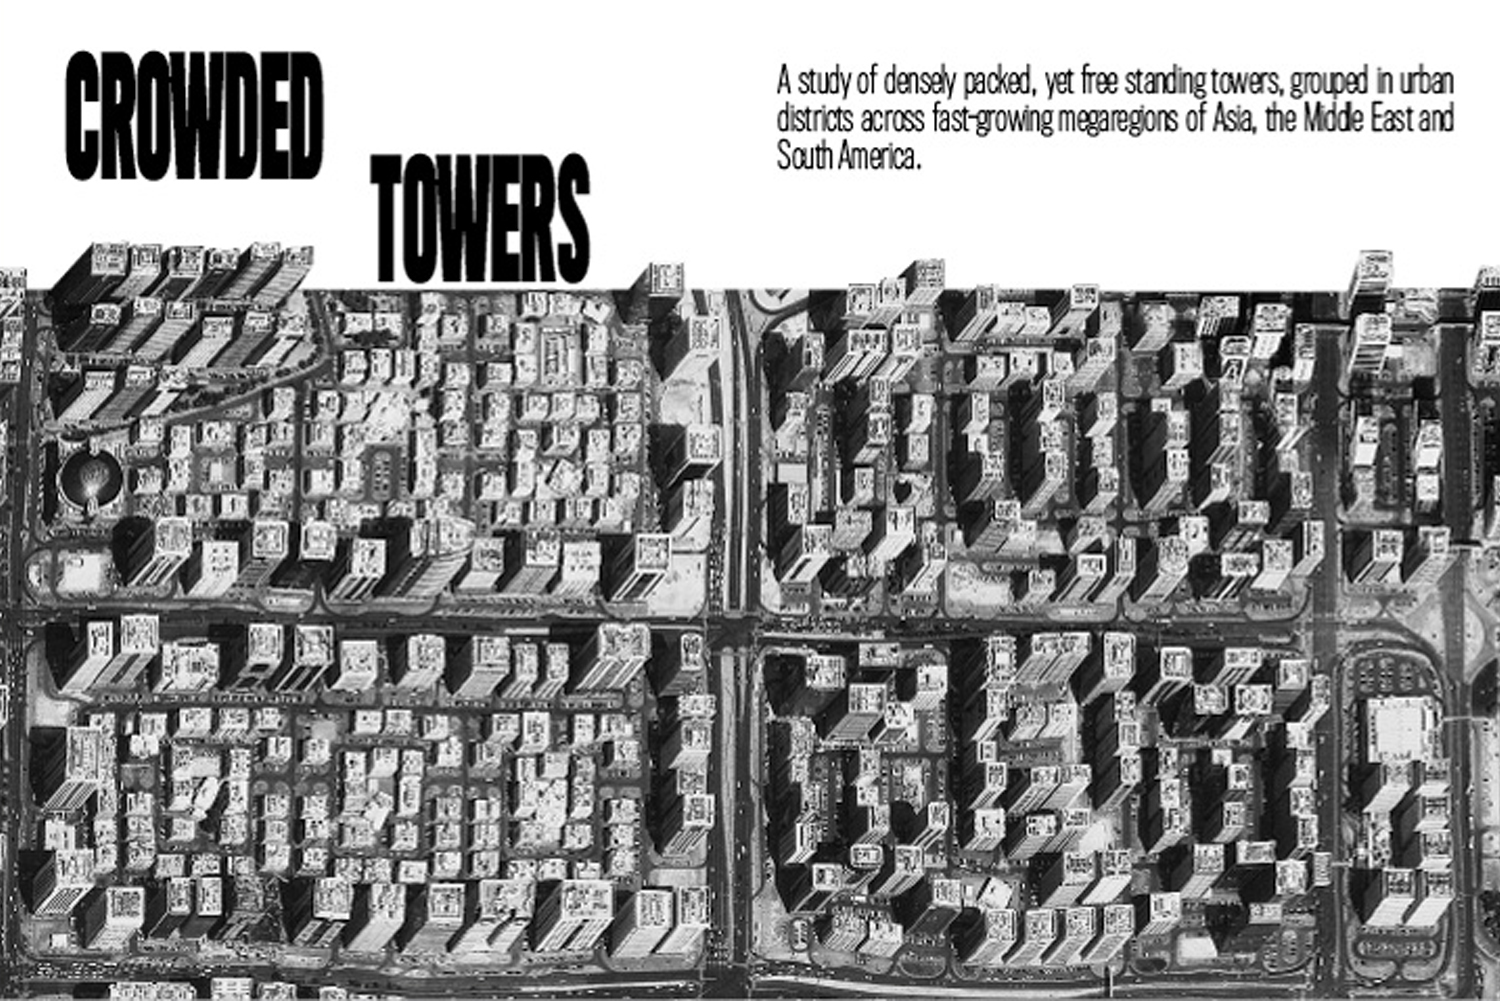 crowded towers